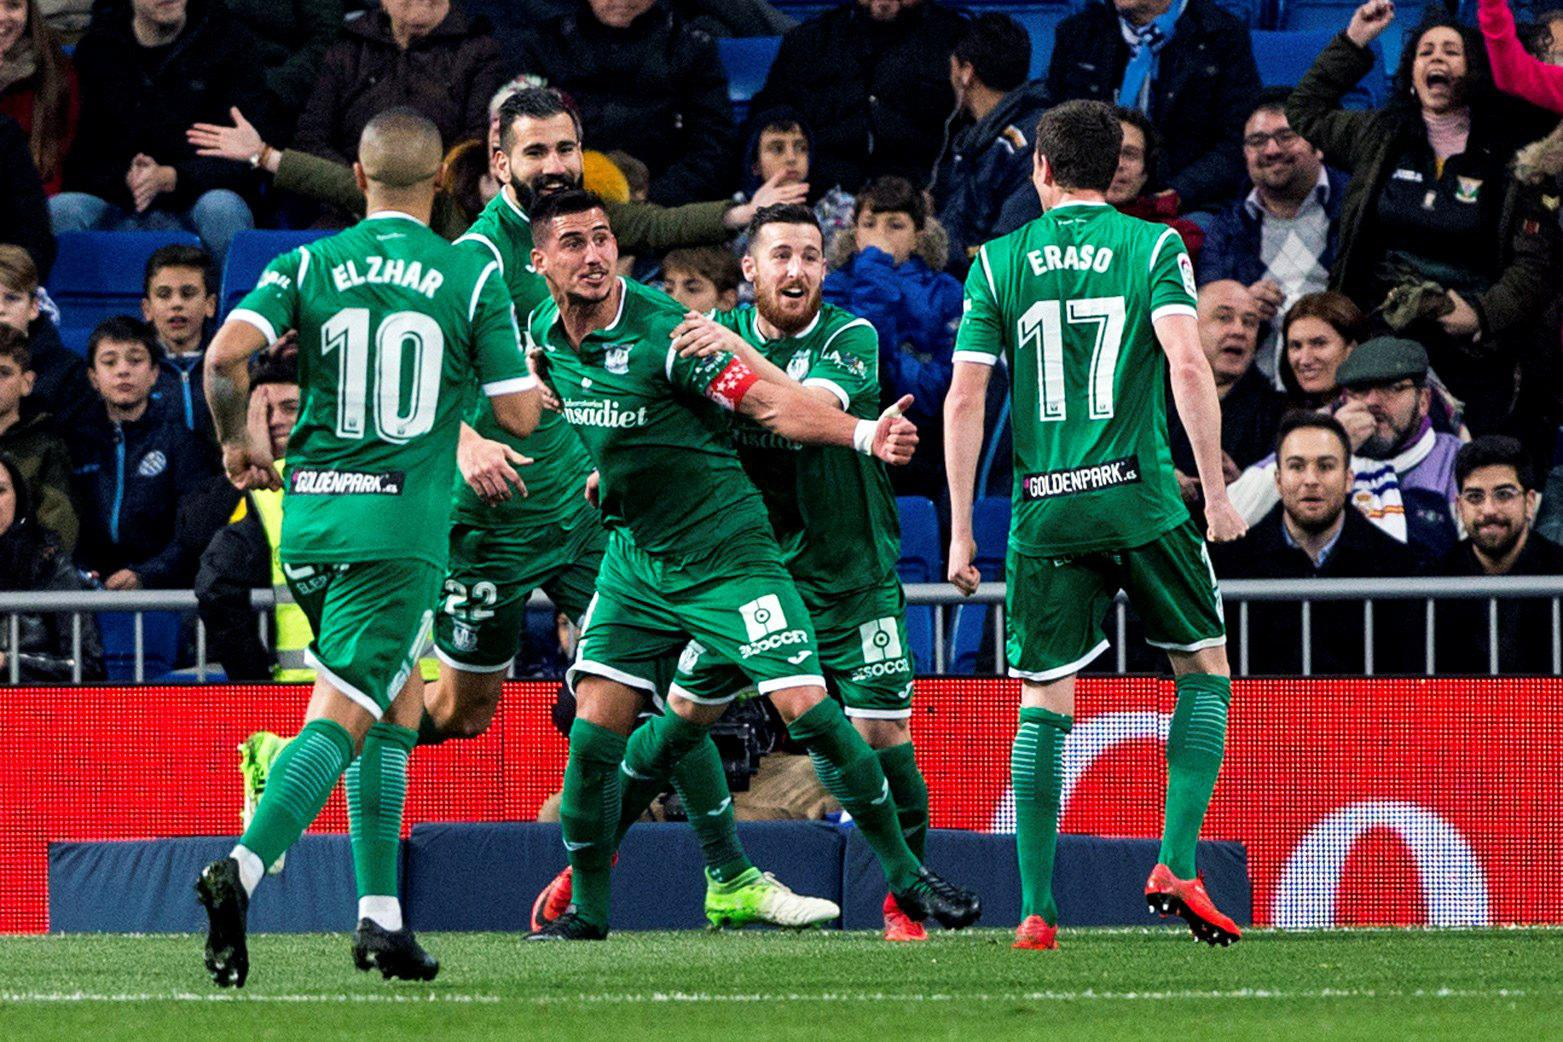 Full credit to Leganes for reaching the semi-finals